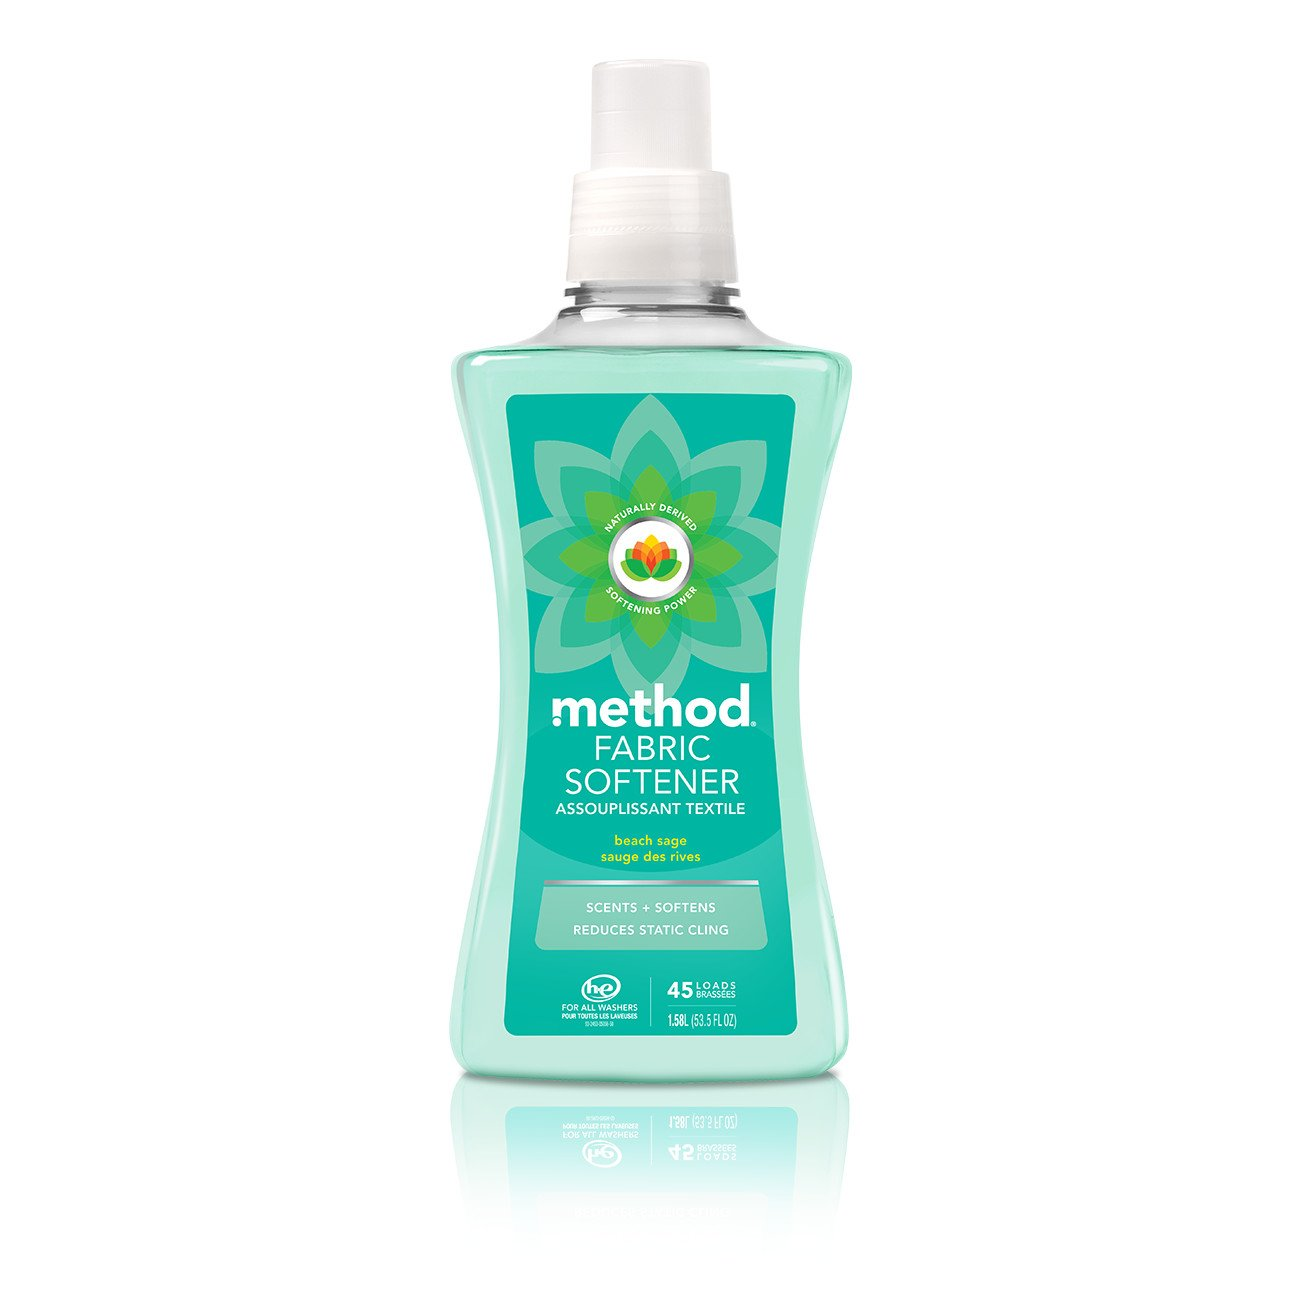 Method Fabric Softener, Beach Sage, 53.5 Ounce, 45 Loads (4 Count)